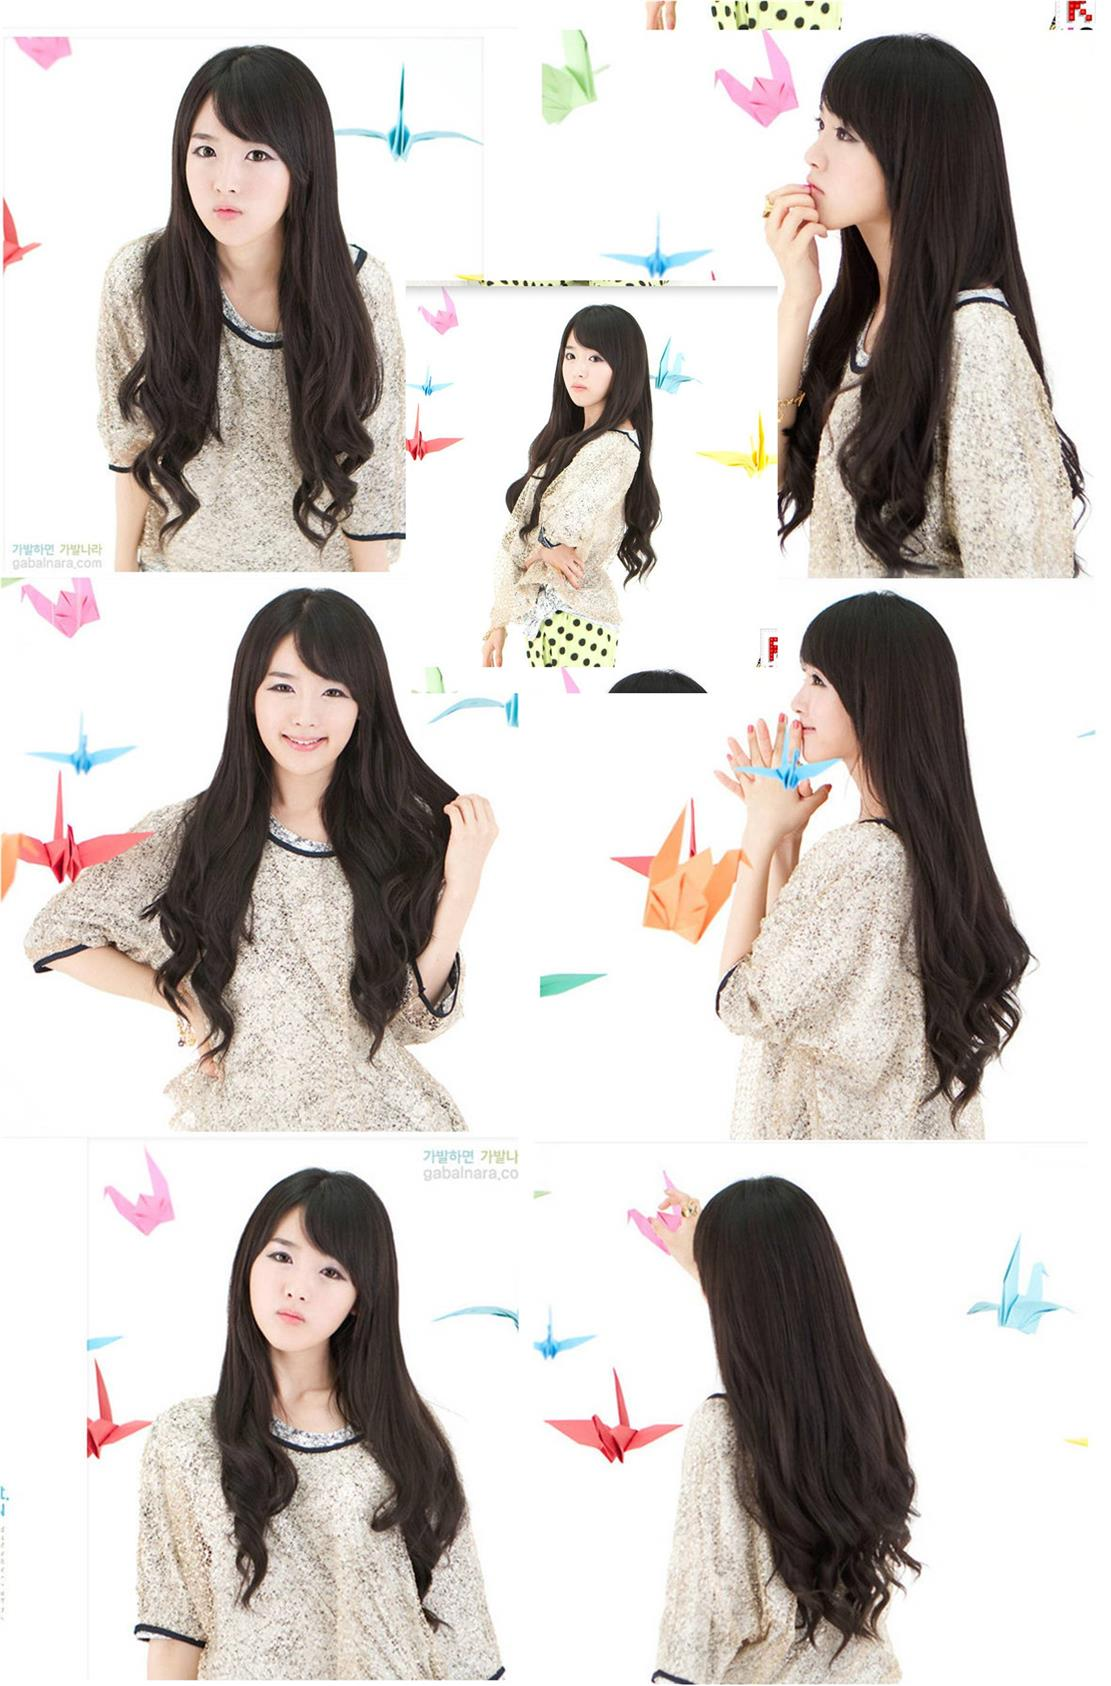 long wig* F34 ready stock-rambut palsu